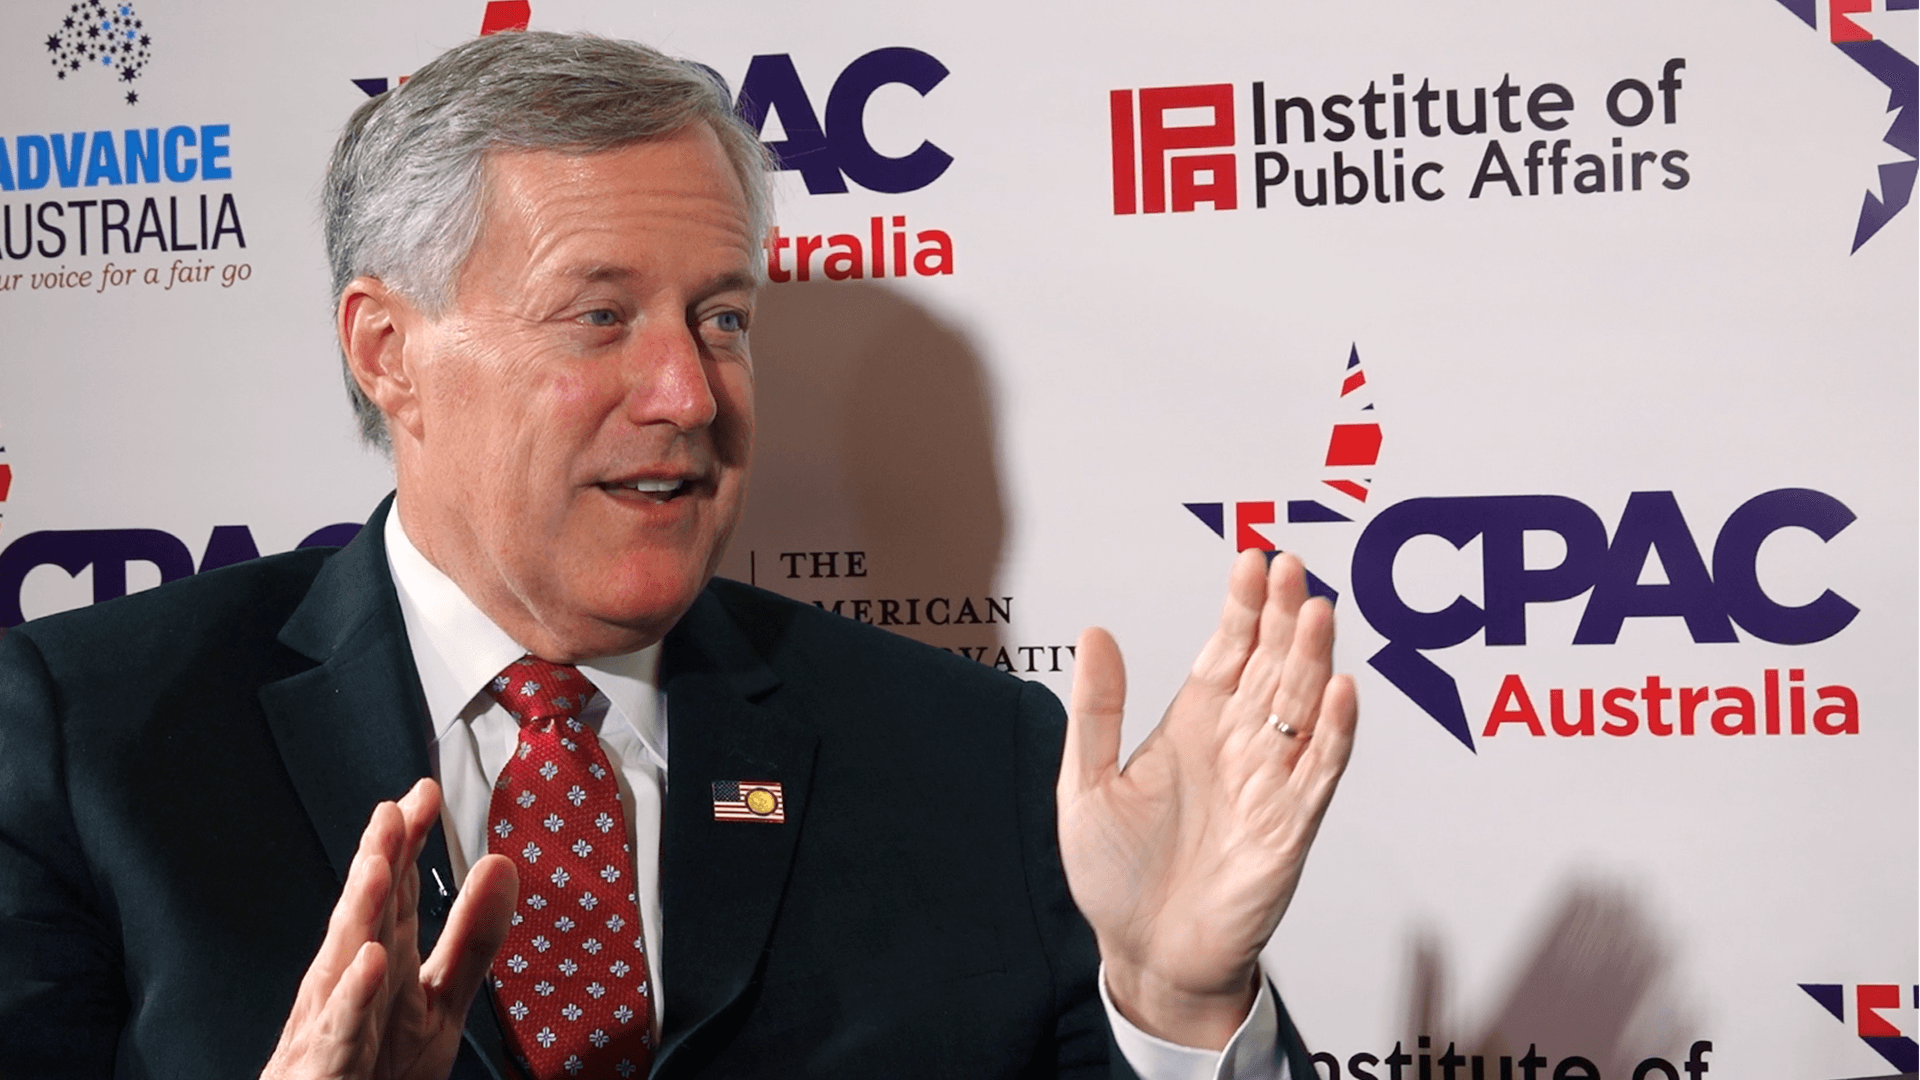 [CPAC Australia Special] Freedom Is Vital to Prosperity—Rep. Mark Meadows on Hong Kong Protests & Censorship